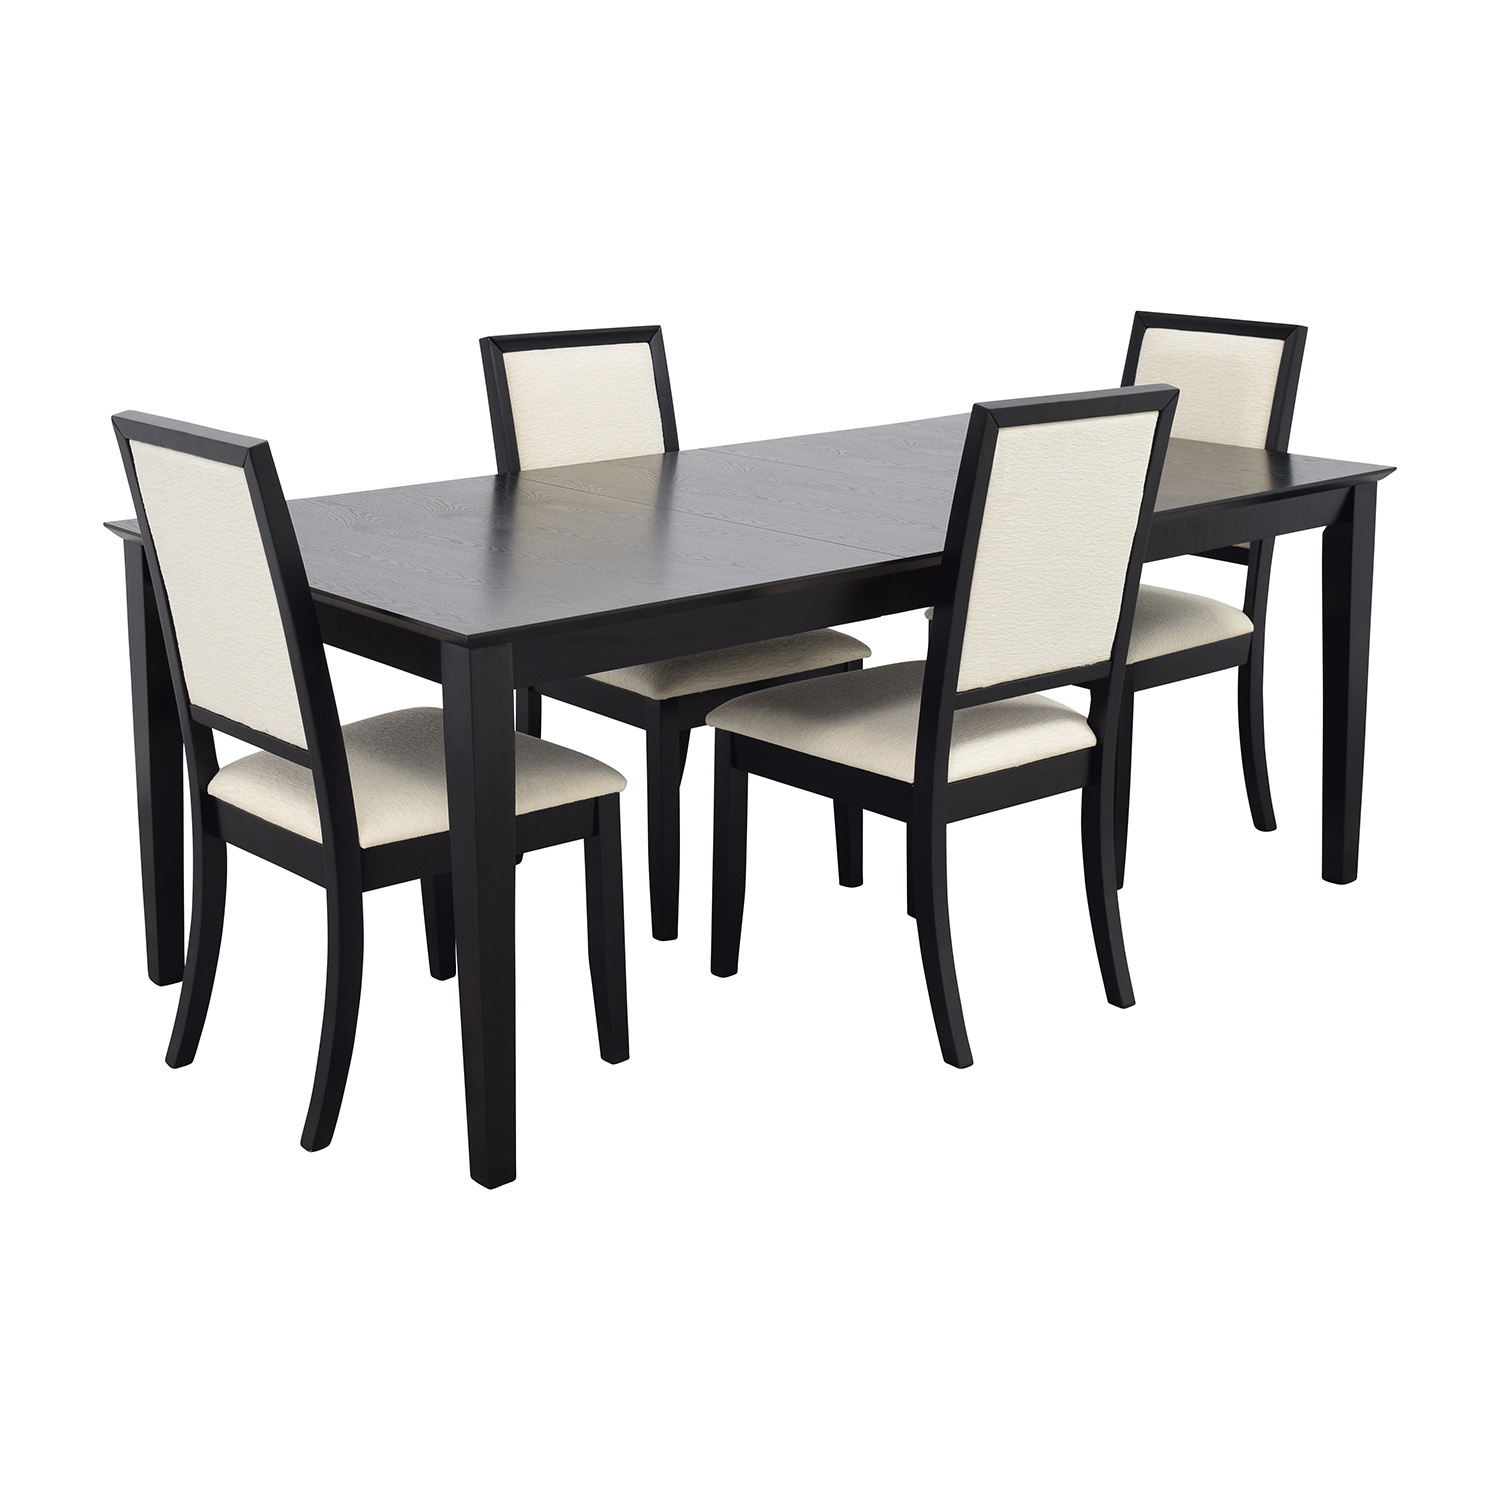 Used Table And Chairs 72 Off Harlem Furniture Harlem Furniture Black Dining